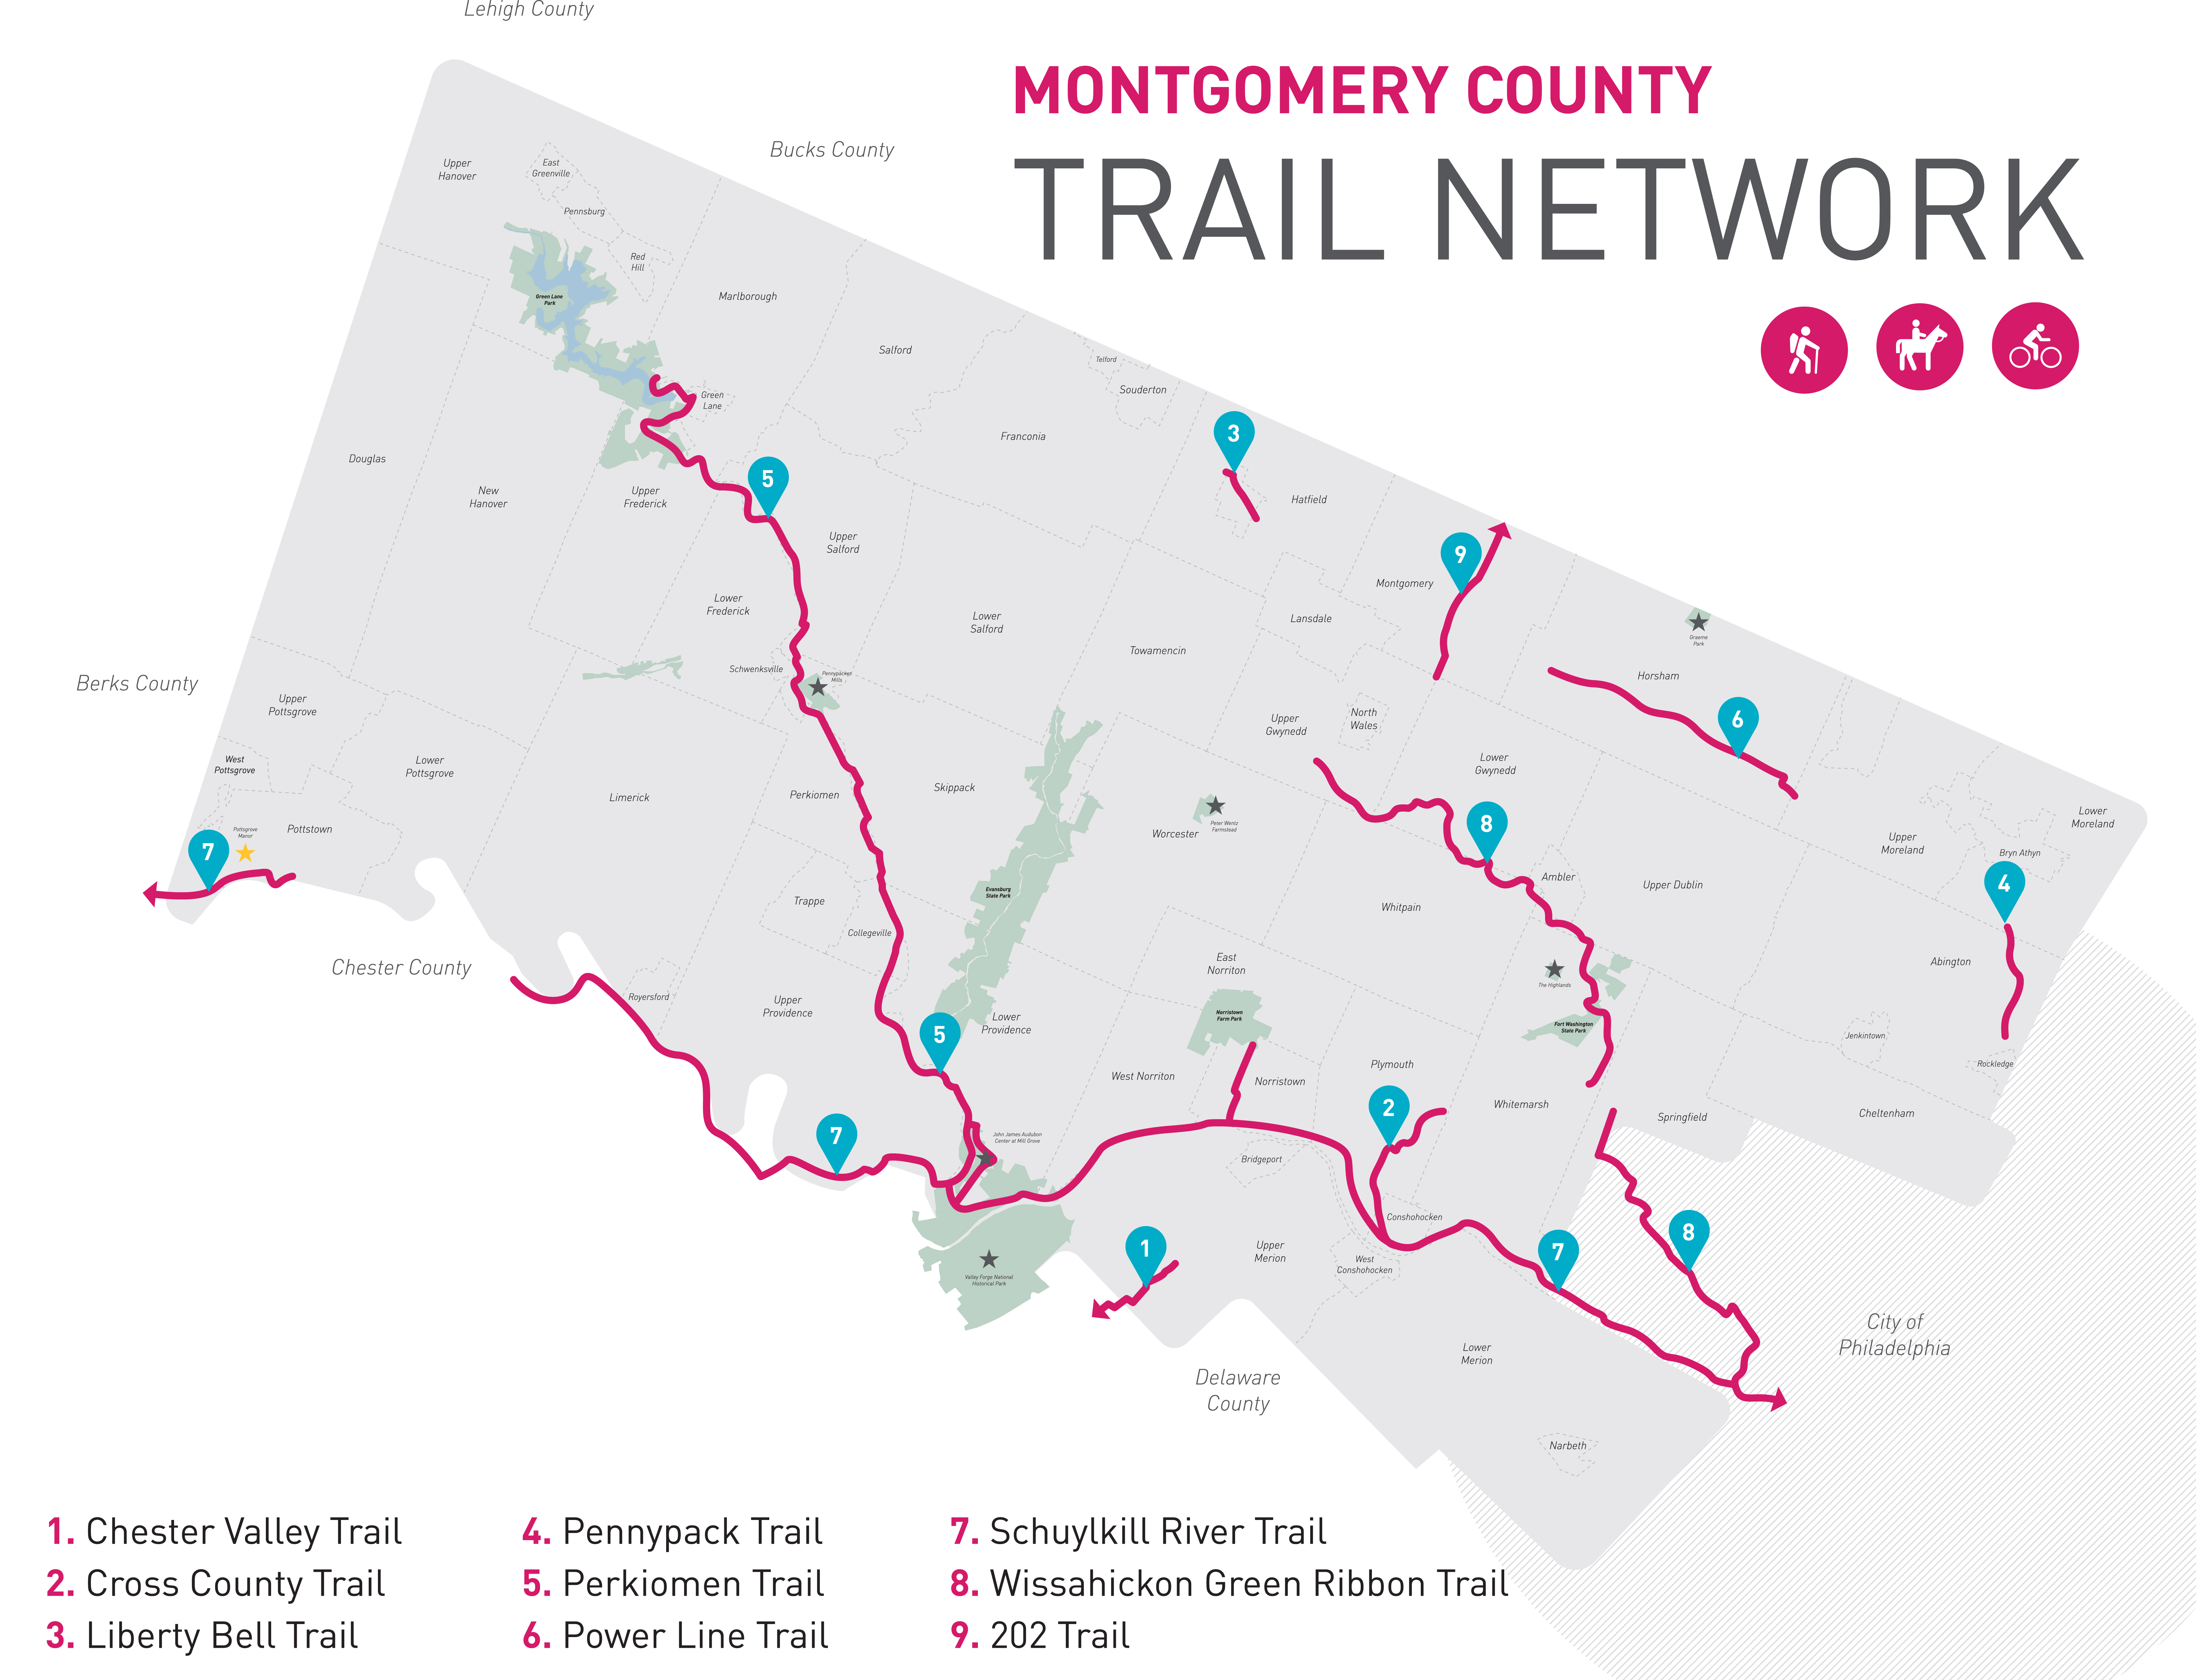 Montgomery County Trail Network | Valley Forge Trail Maps on berks county, plymouth township pa map, king of prussia, lancaster county pa map, lehigh valley, tioga county pa map, fulton county pa map, monroe county pa map, allegheny county, schuylkill county, pennsylvania county map, washington county pa map, chester county road map, hazleton pa map, westmoreland county pa map, somerset county pa map, bucks county, philadelphia zip code map, washington county, north wales, philadelphia county, lehigh county pa map, wayne county pa map, lancaster county, lehigh county, delaware county, carbon county pa map, crawford county pa map, monroe county, downingtown pa map, chester county, franklin county, northampton county pa map, bucks county pa map, jenkintown pa map, lackawanna county, delaware valley,